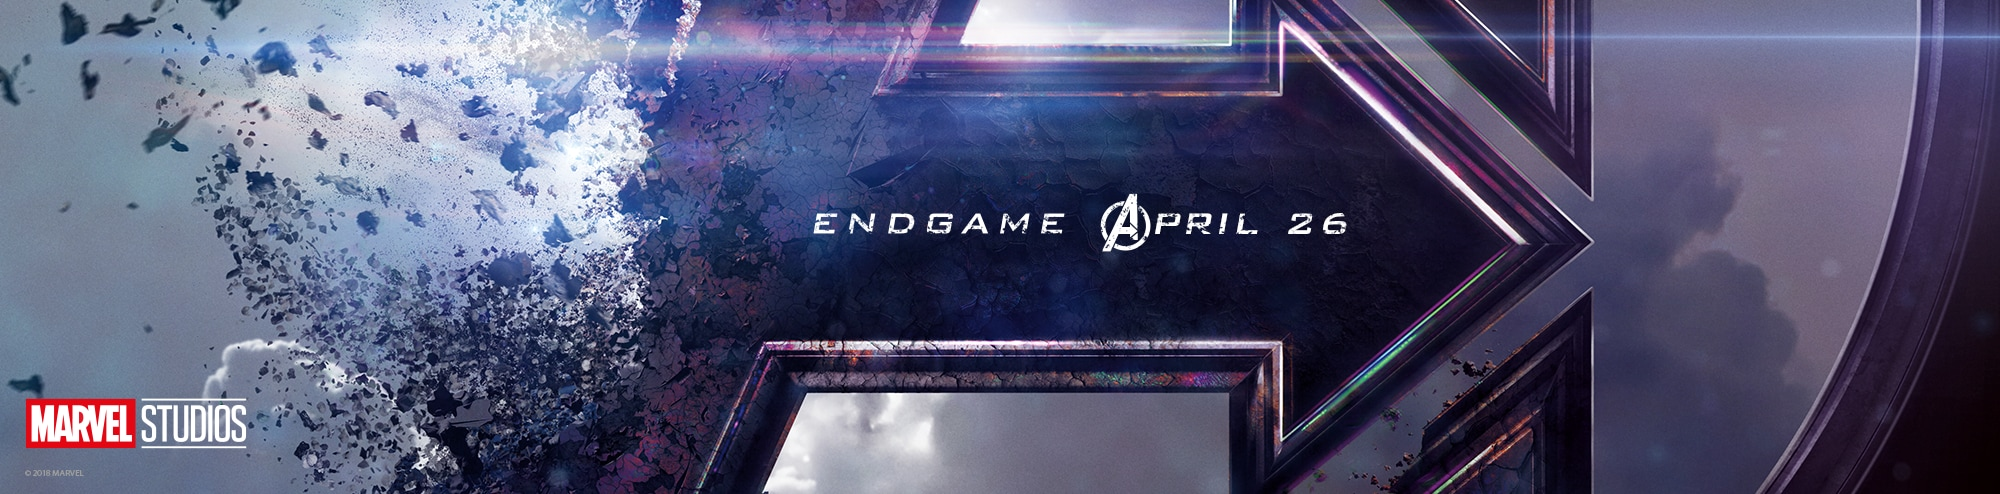 Avengers Endgame_Movie Page_Banner